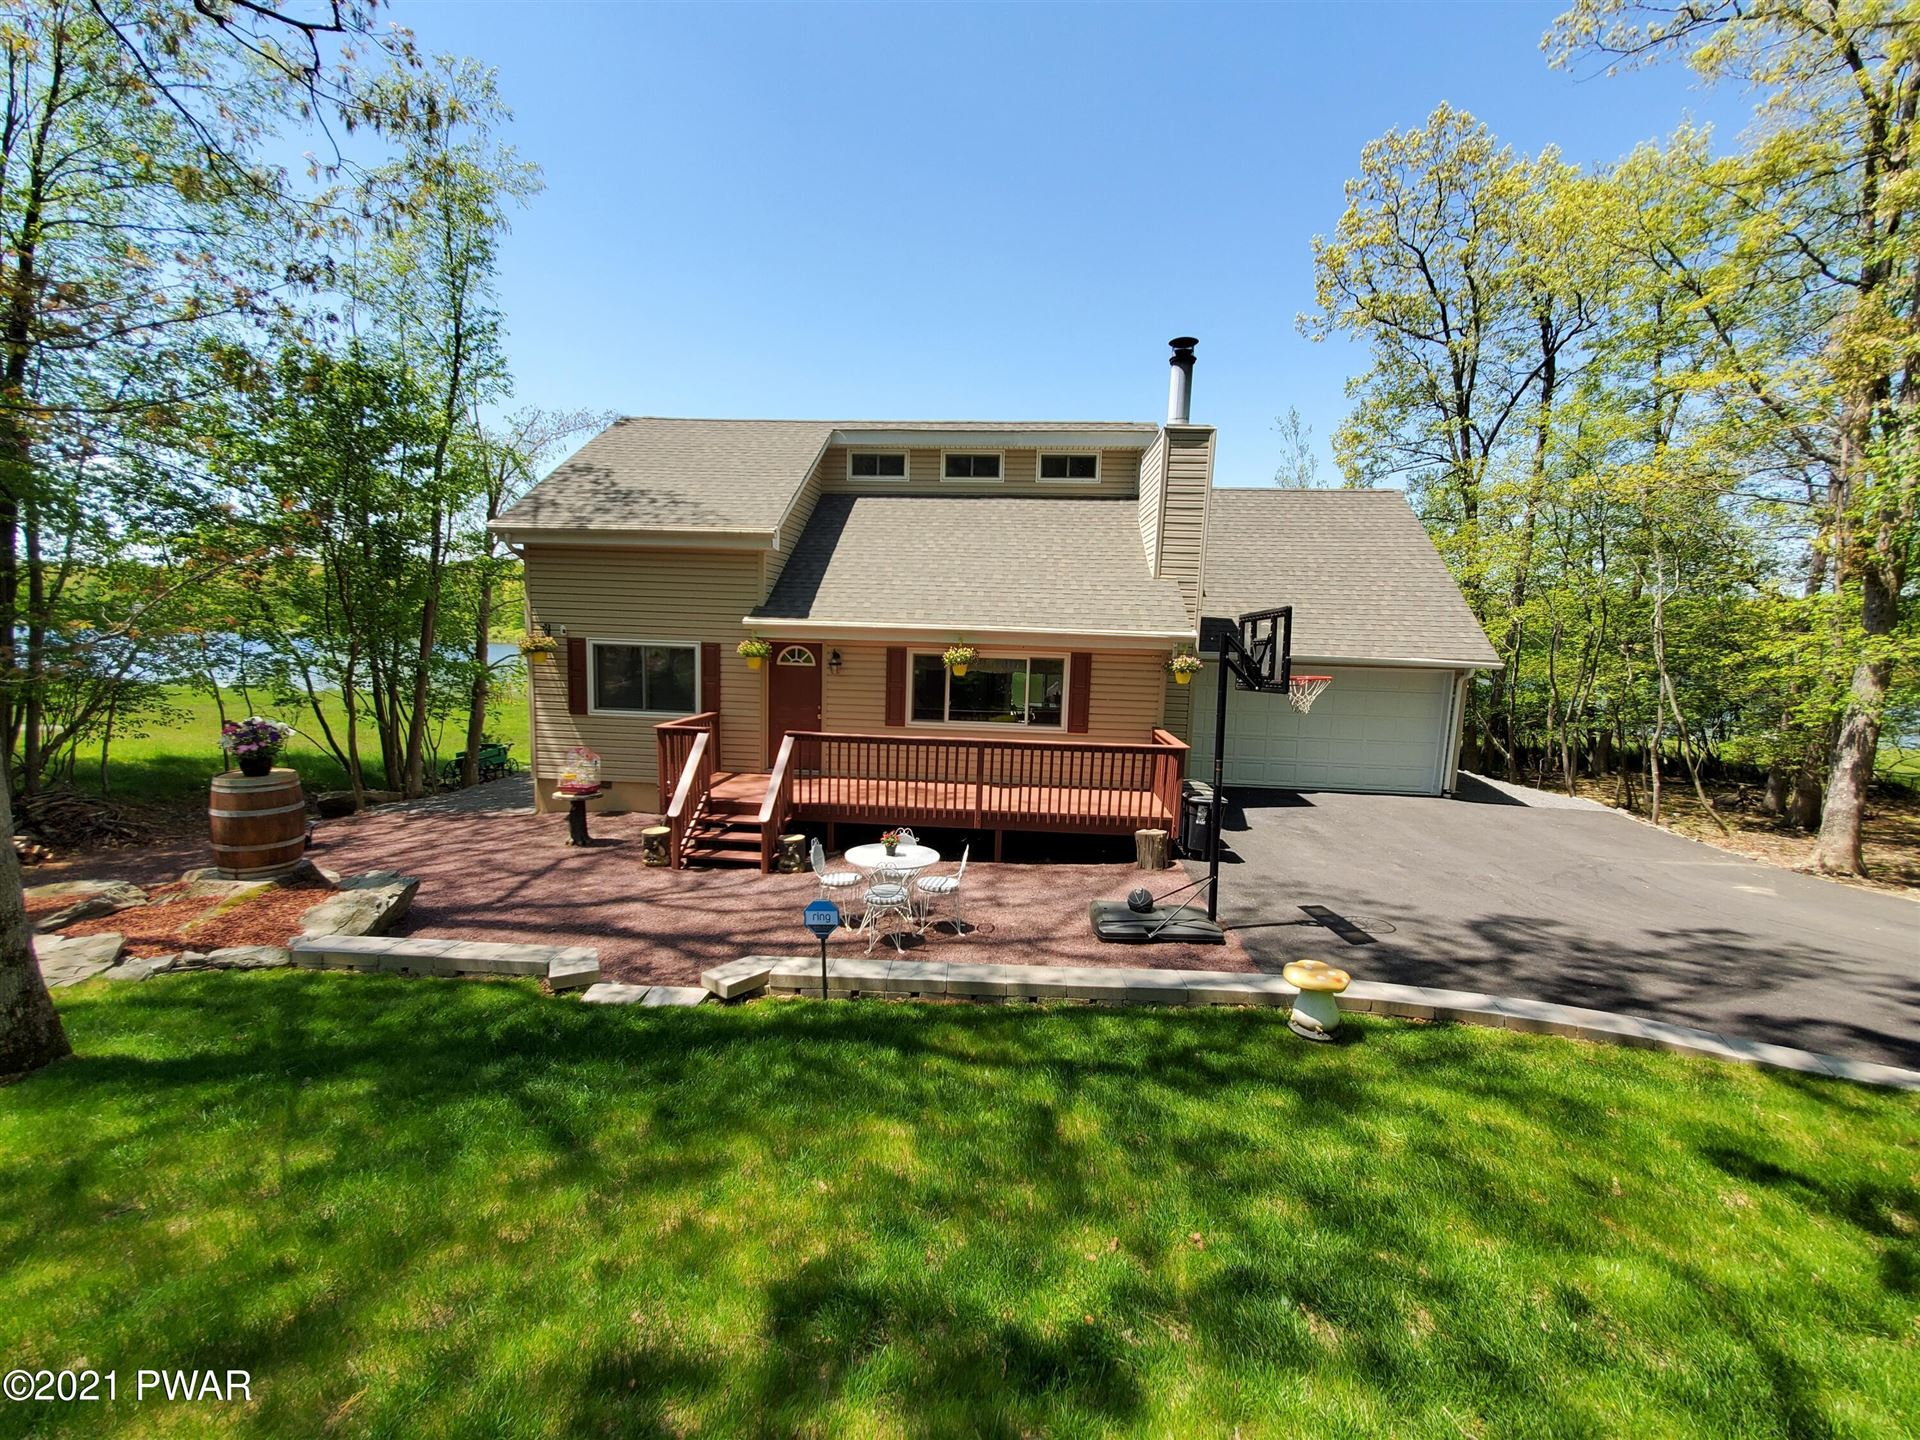 Photo of 134 Northwood Rd, Dingmans Ferry, PA 18328 (MLS # 21-1712)